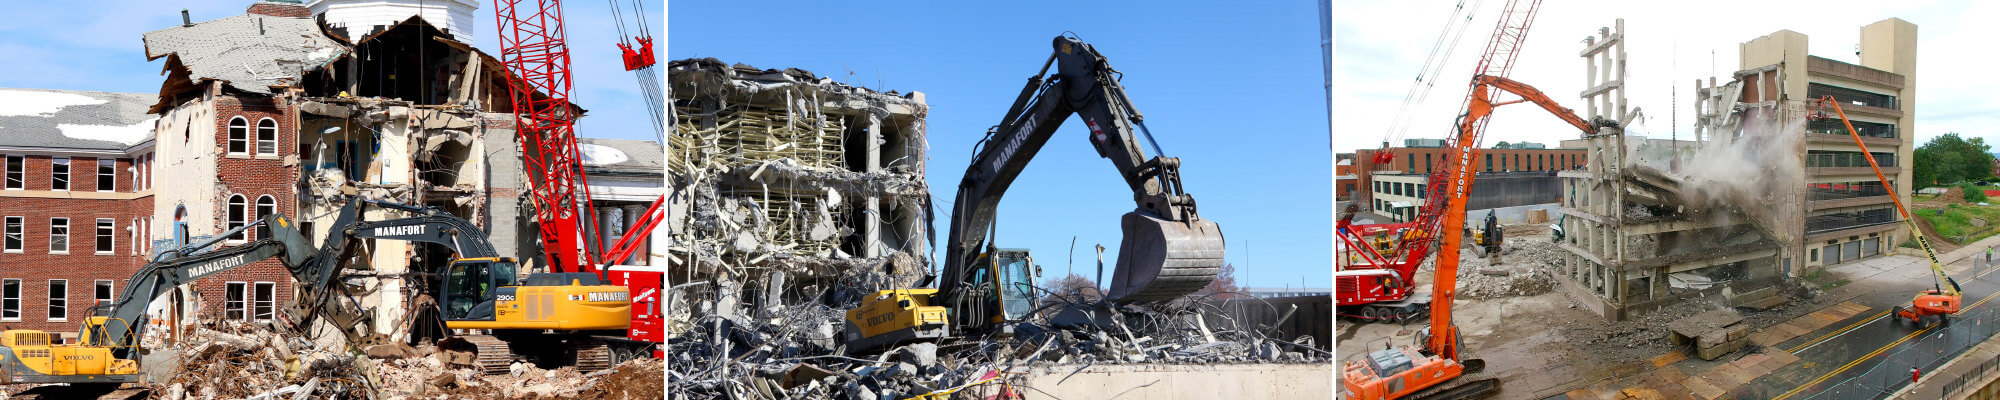 Industrial Demolition Company, Hazardous Remediation, Hazardous Abatement